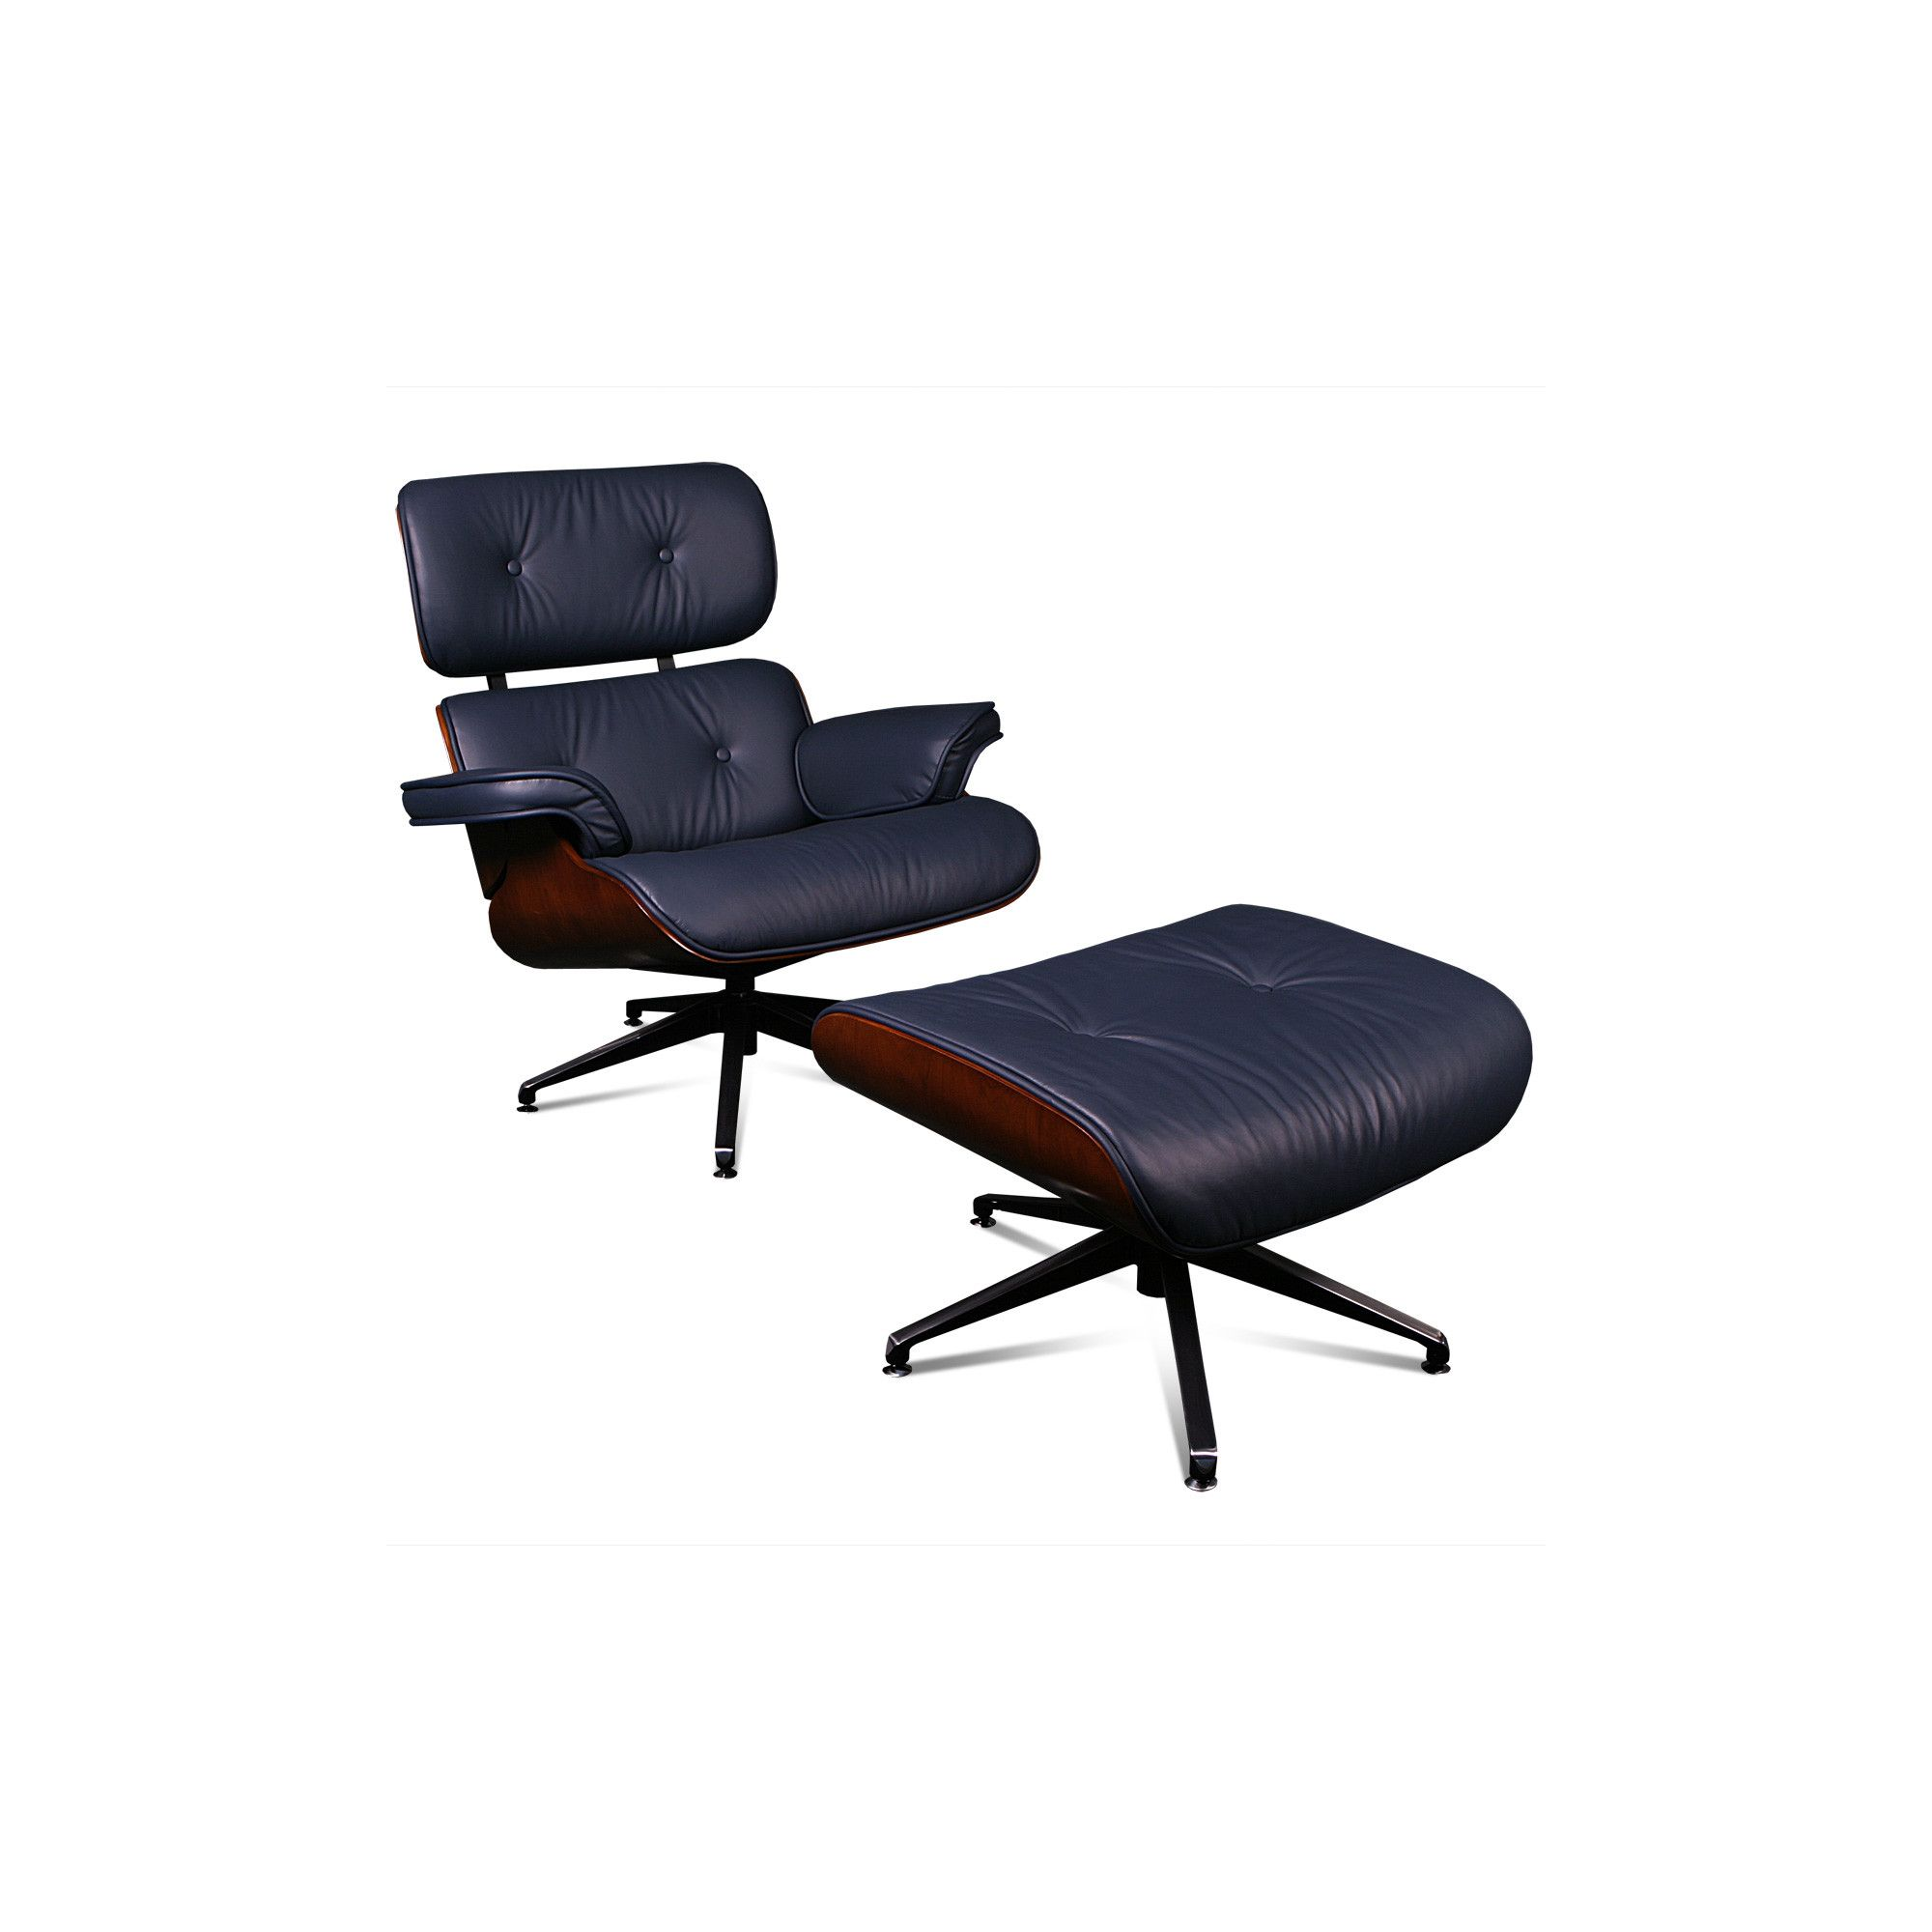 ProMech Racing Classic Leather Lounge Chair and Ottoman - Blue